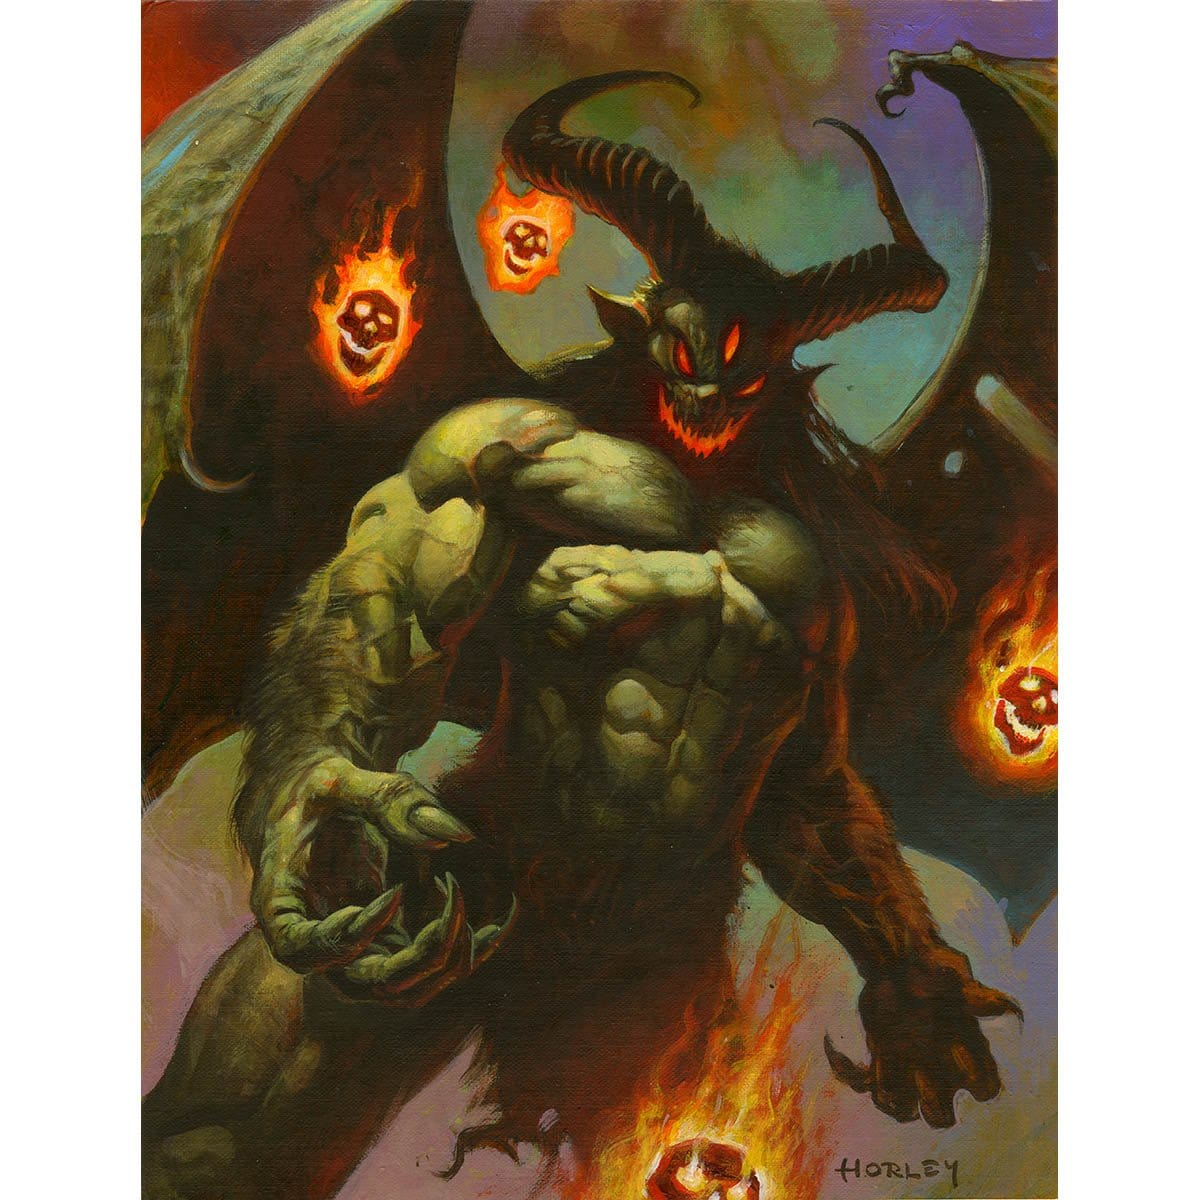 Urami Token Print - Print - Original Magic Art - Accessories for Magic the Gathering and other card games